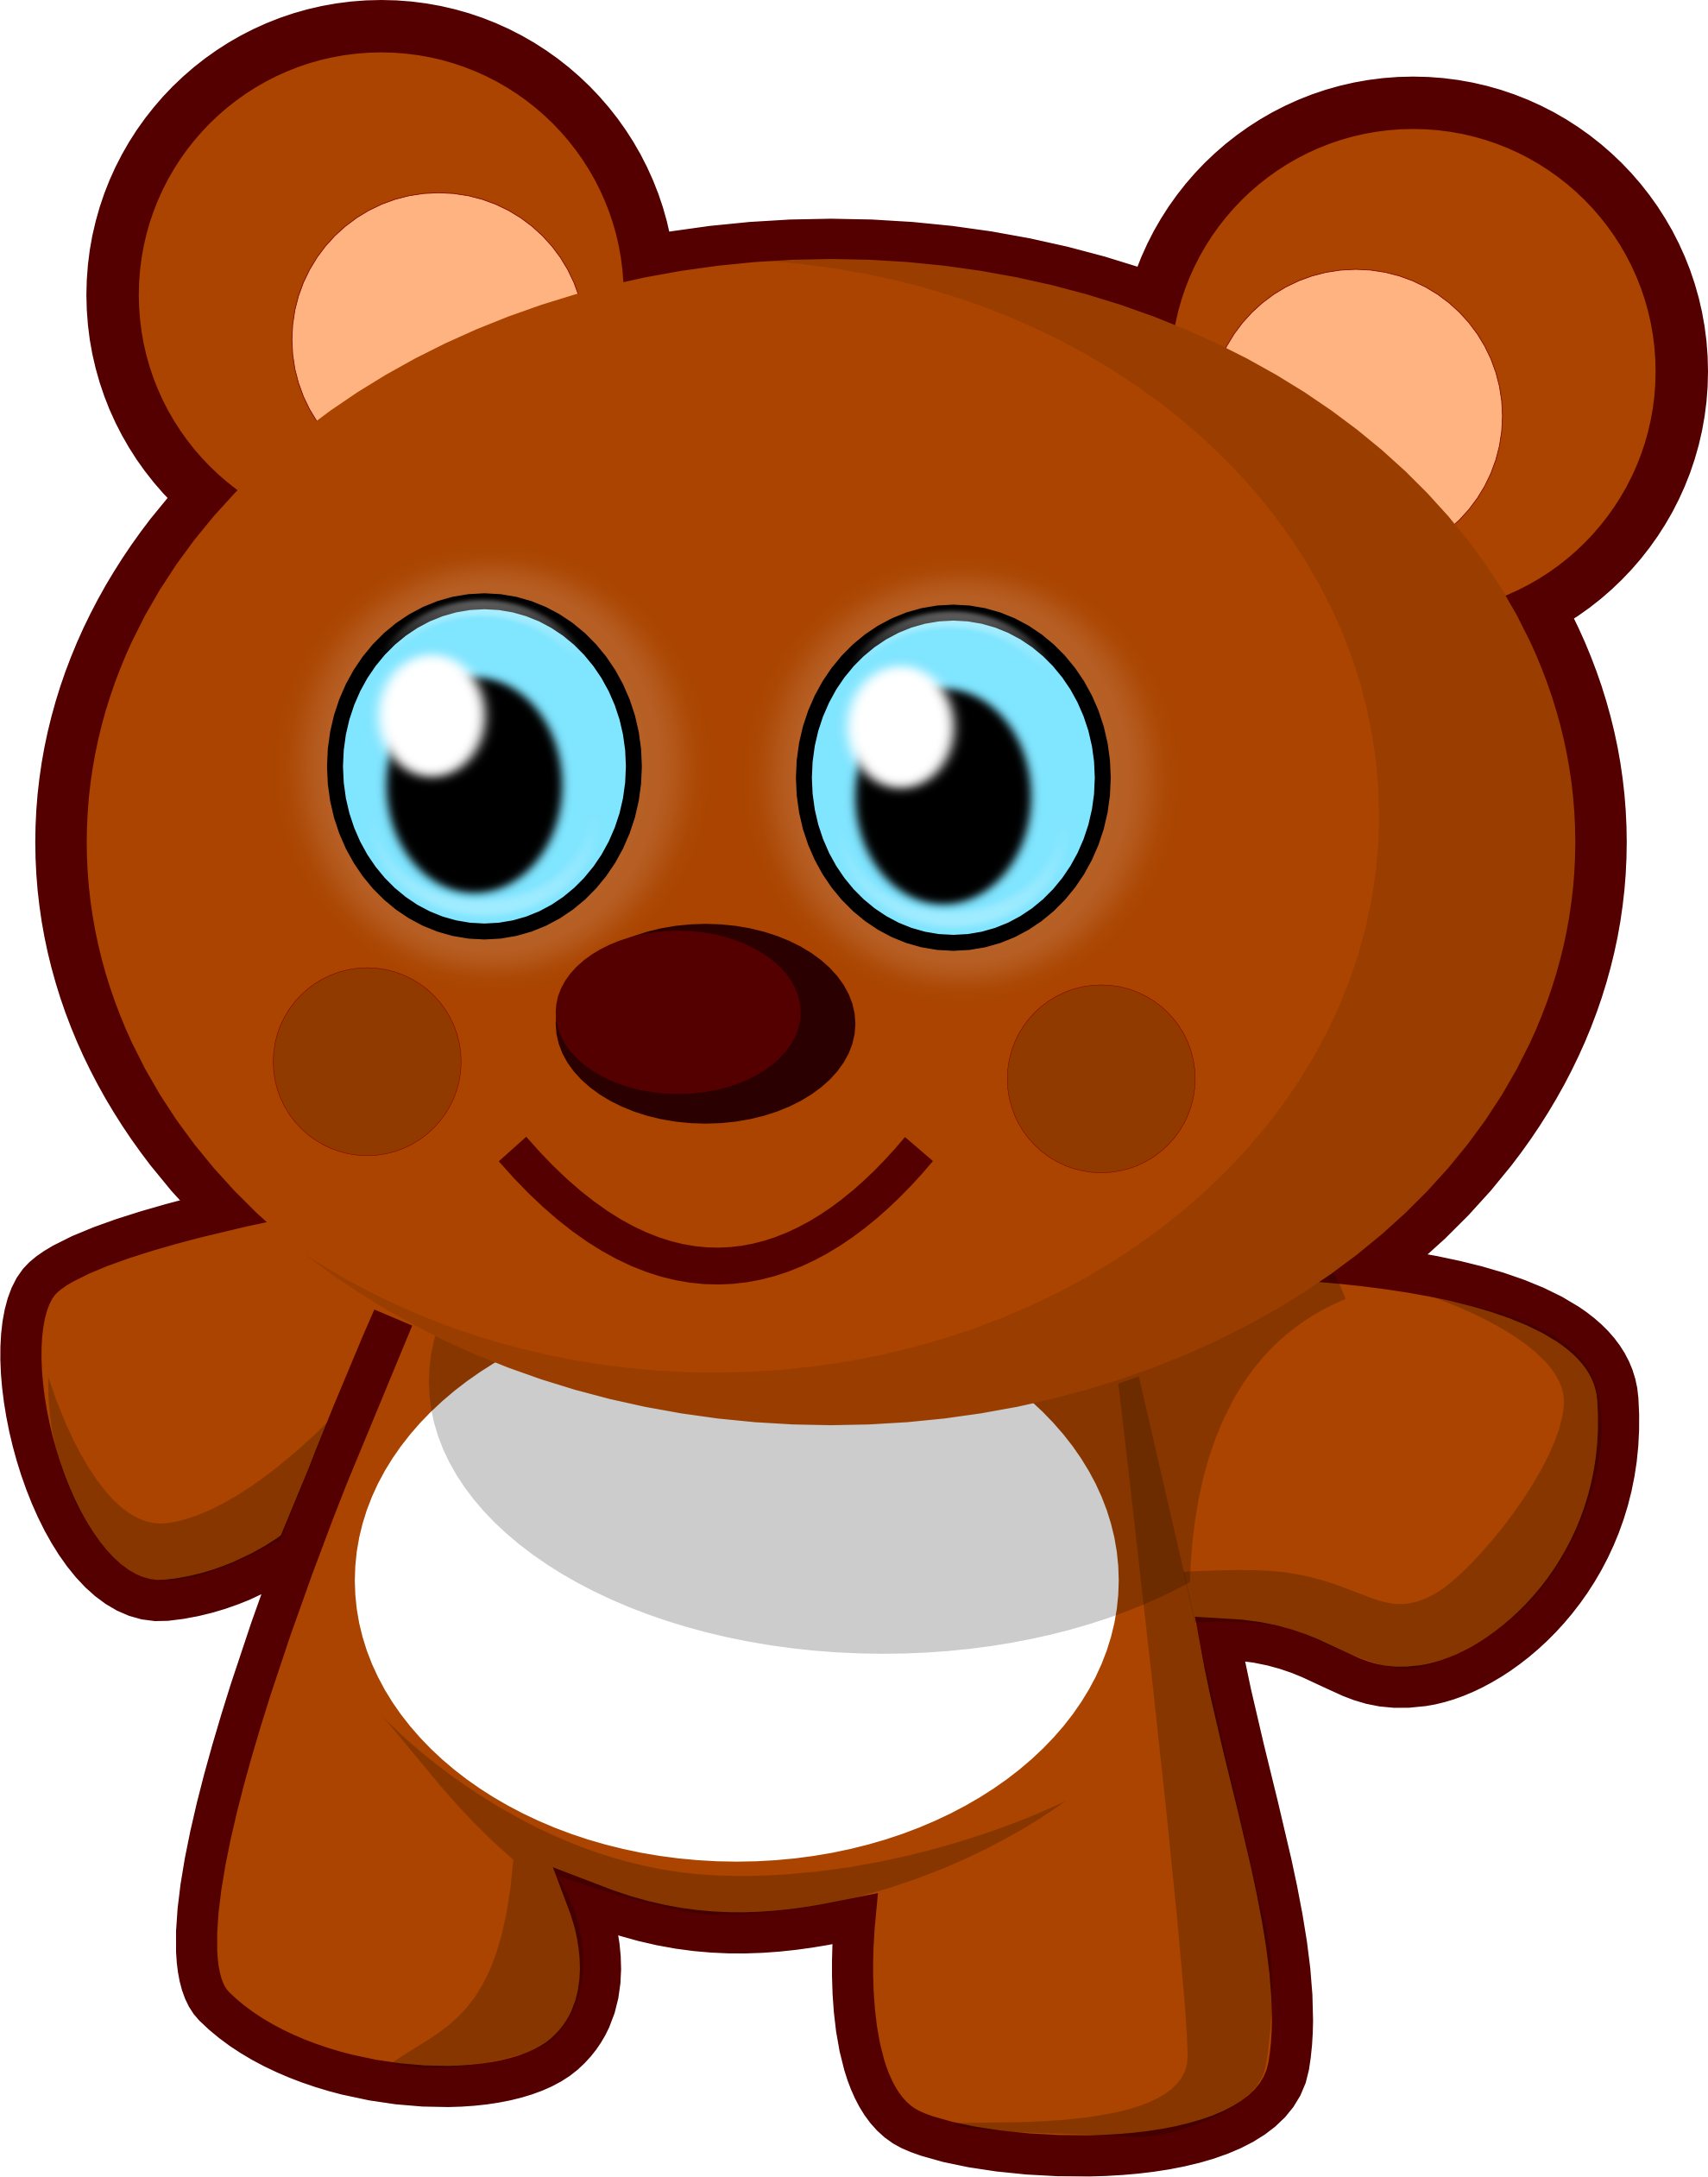 Teddy Bear Vector - ClipArt Best